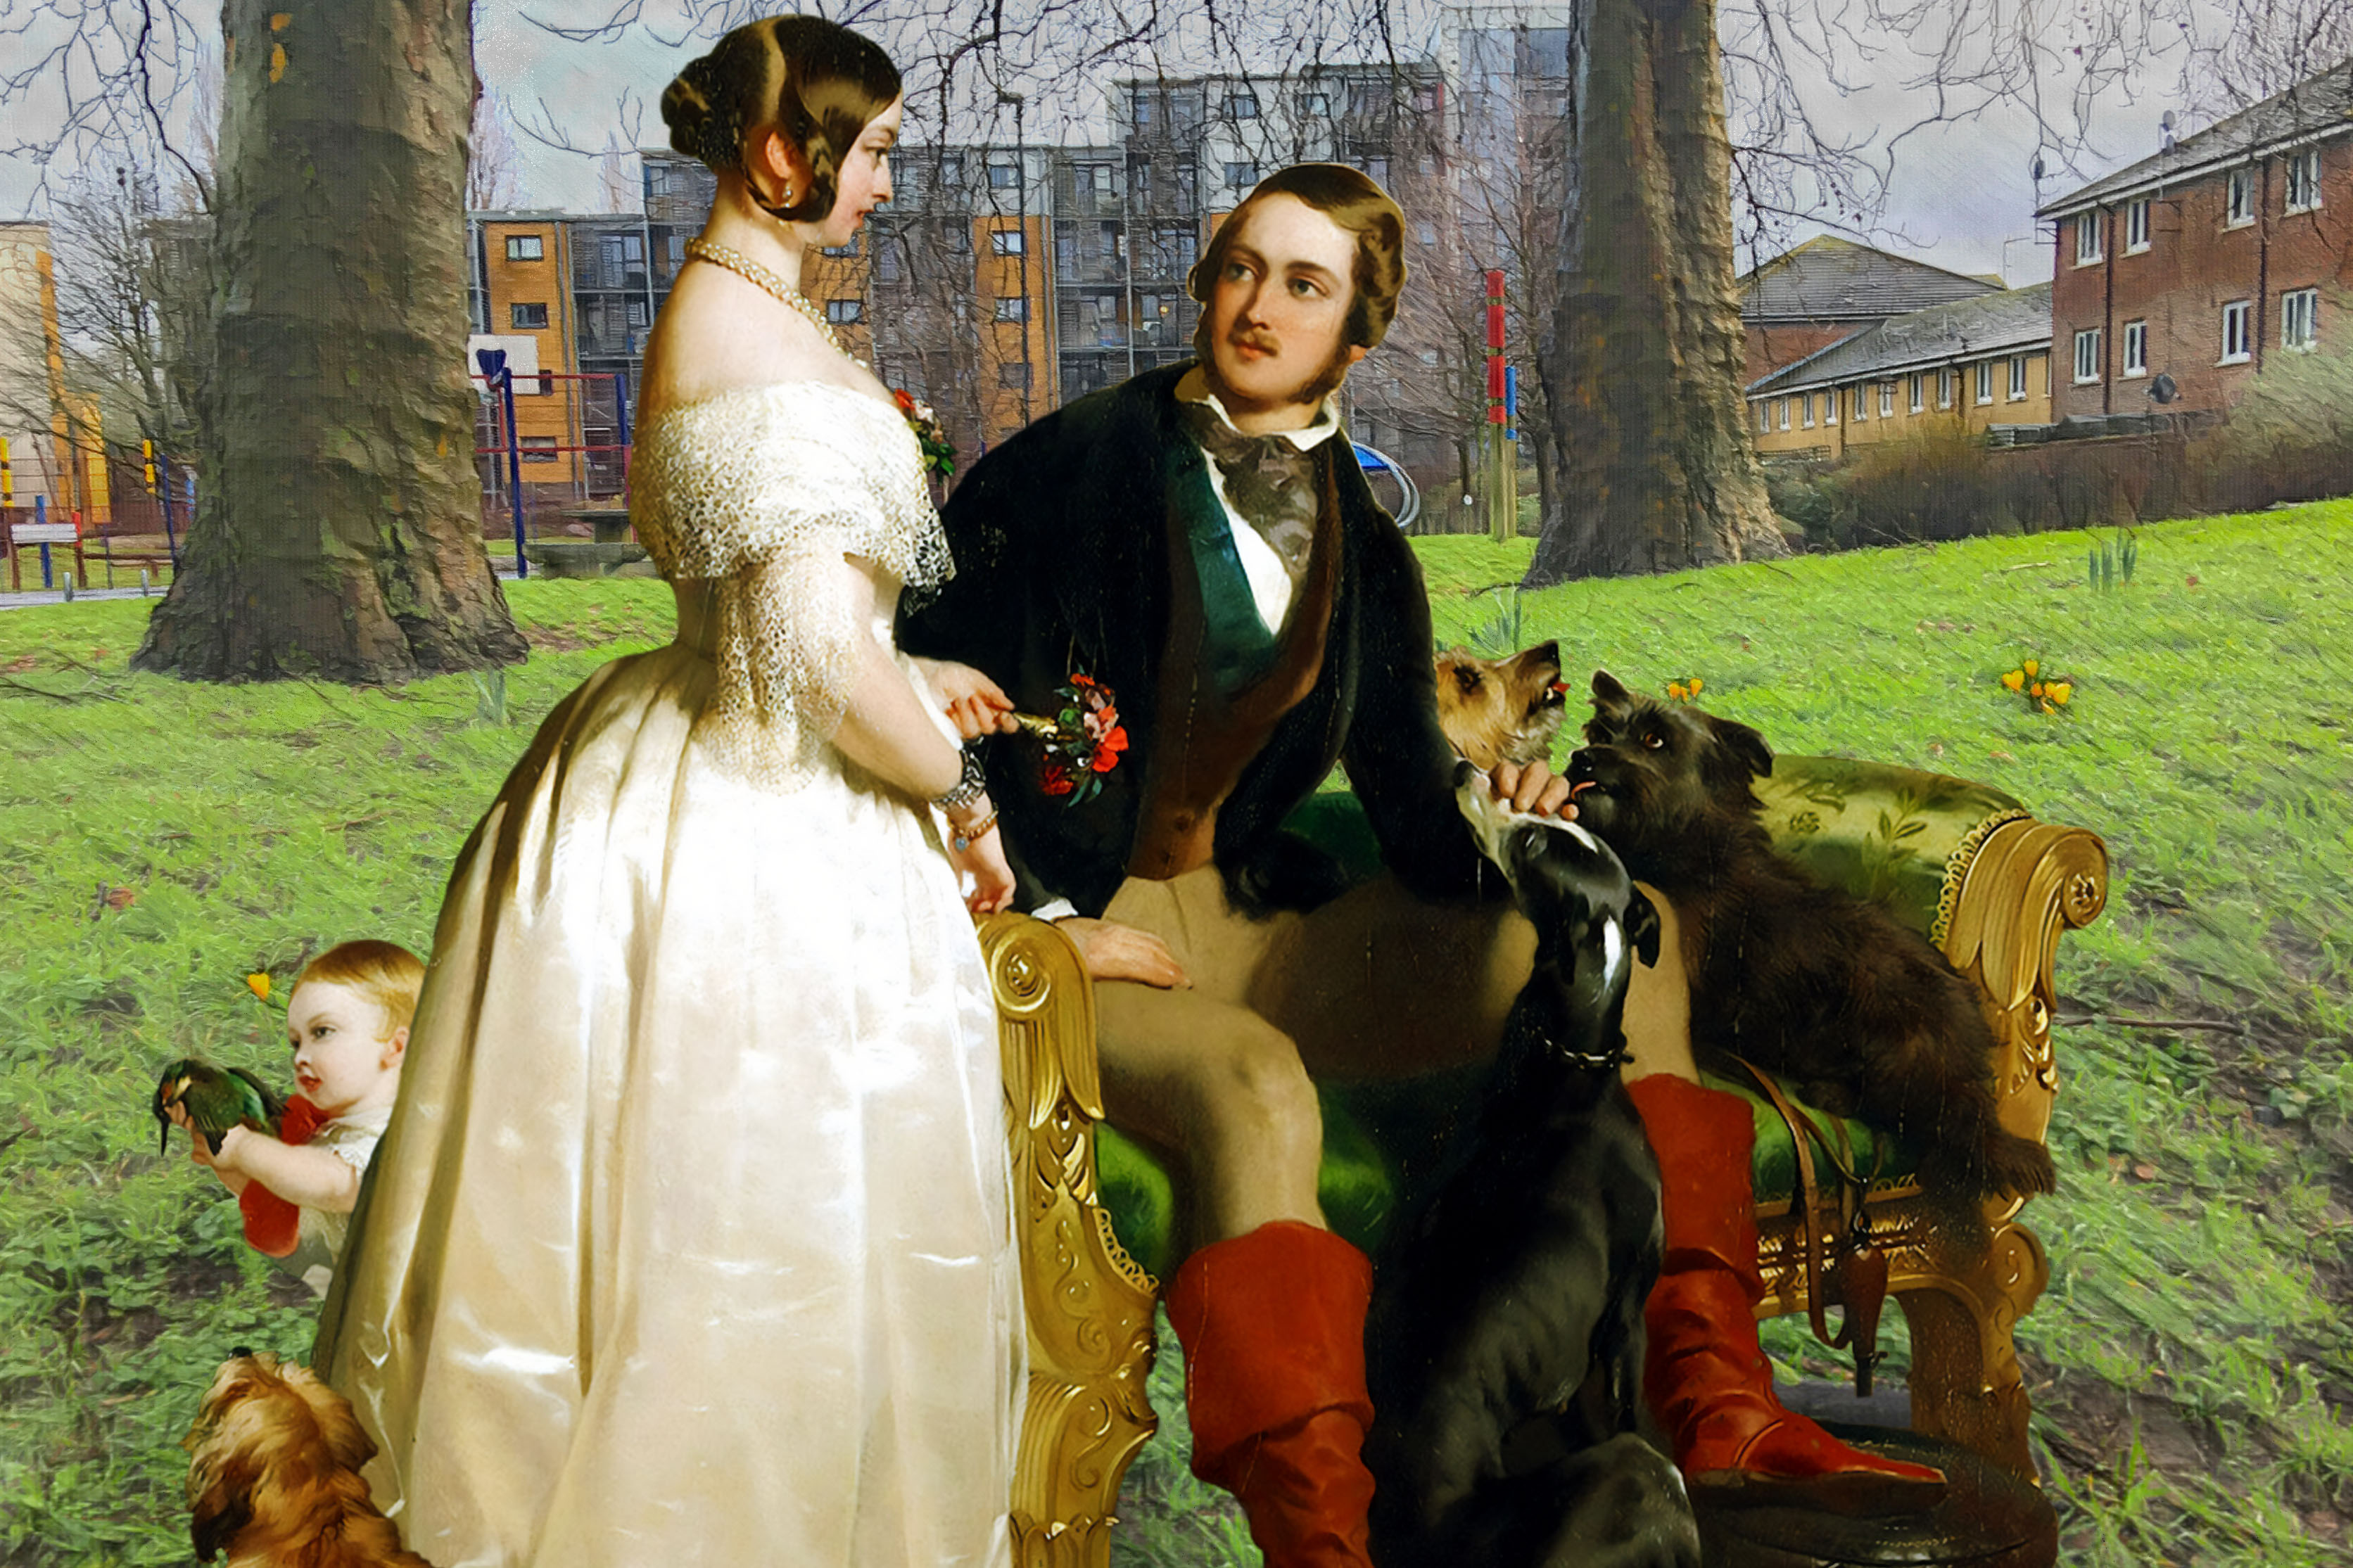 "Celebrating my 300th pandemic Twitter post with Queen Victoria and Albert from Edwin Landseer's ""Windsor Castle in Modern Times"" (c.1842) in Pepys Park, Deptford"